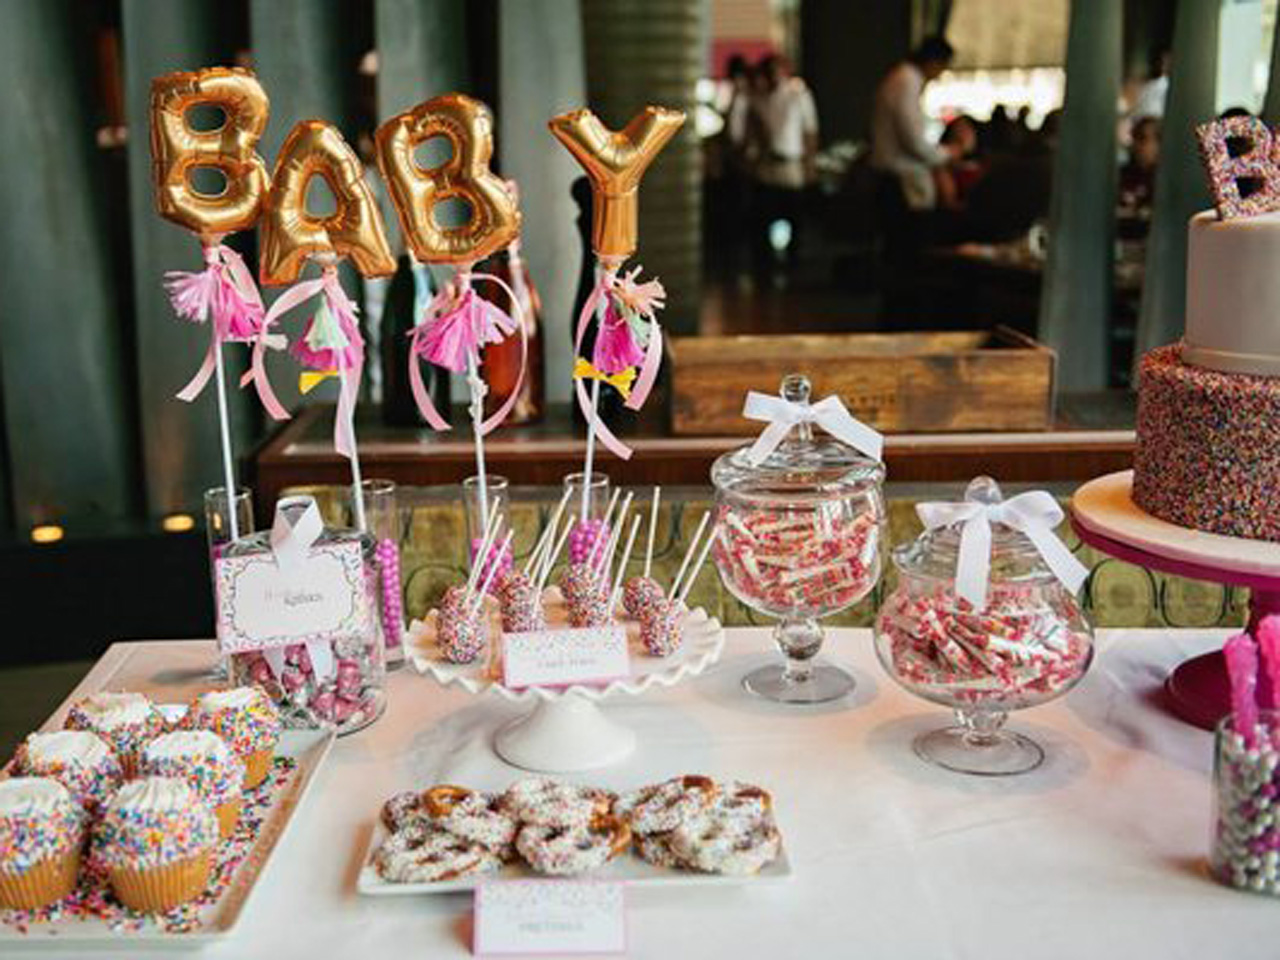 The Most Popular Baby Shower Themes For 2018 Are So Cute